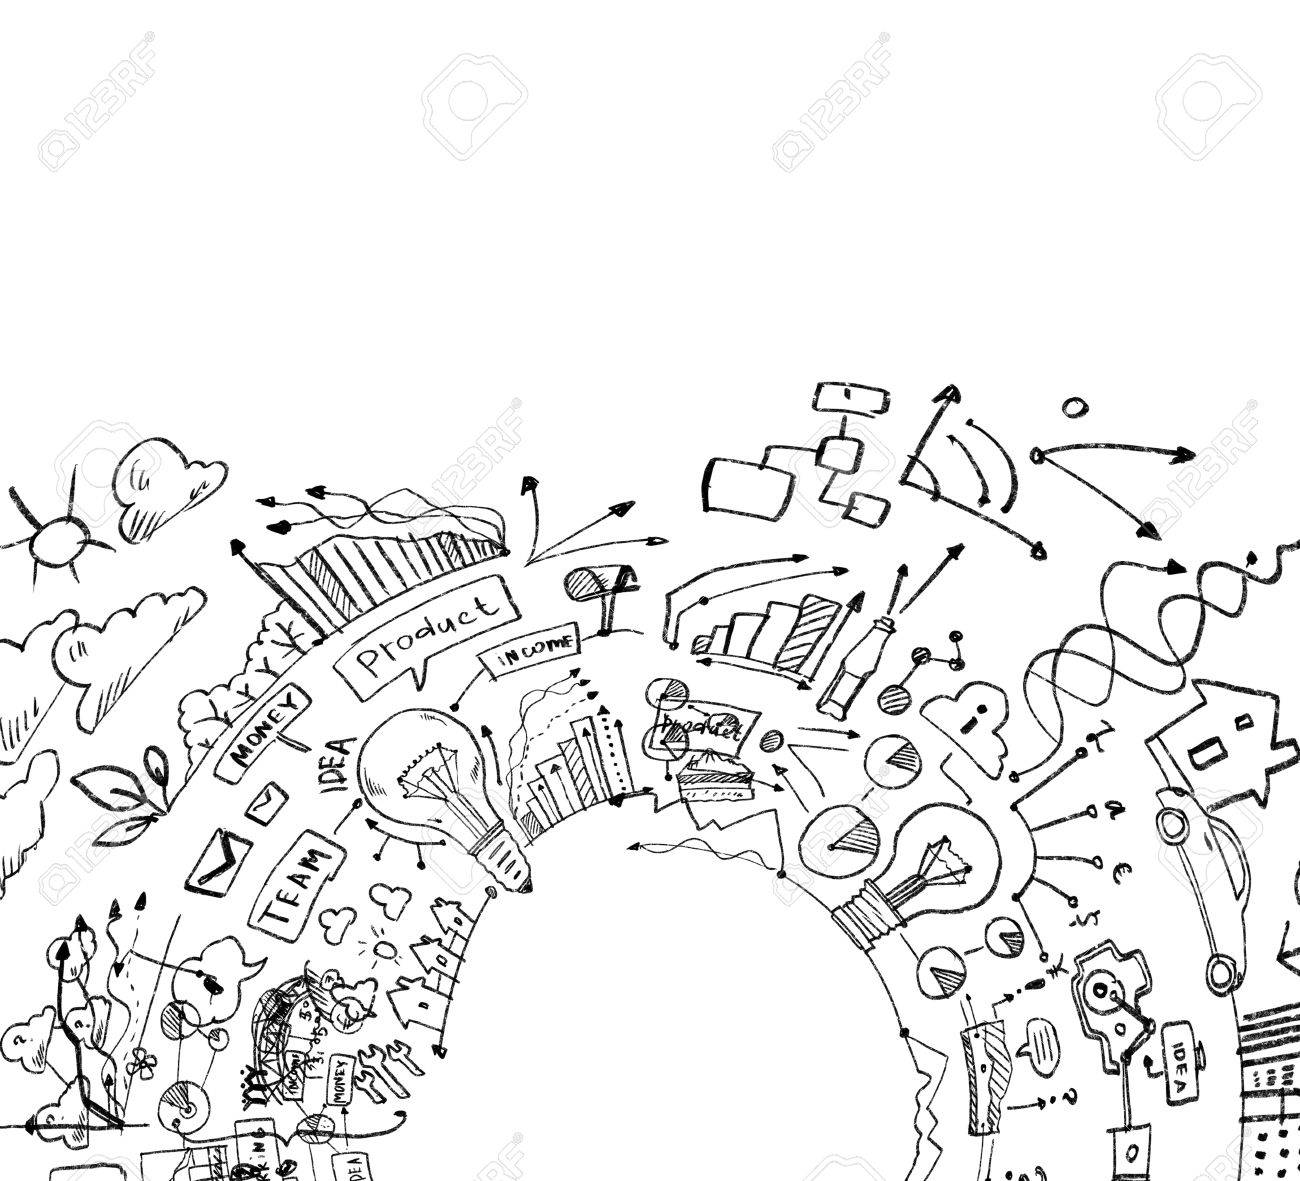 Background image with business strategy drawings marketing idea stock photo 24970870